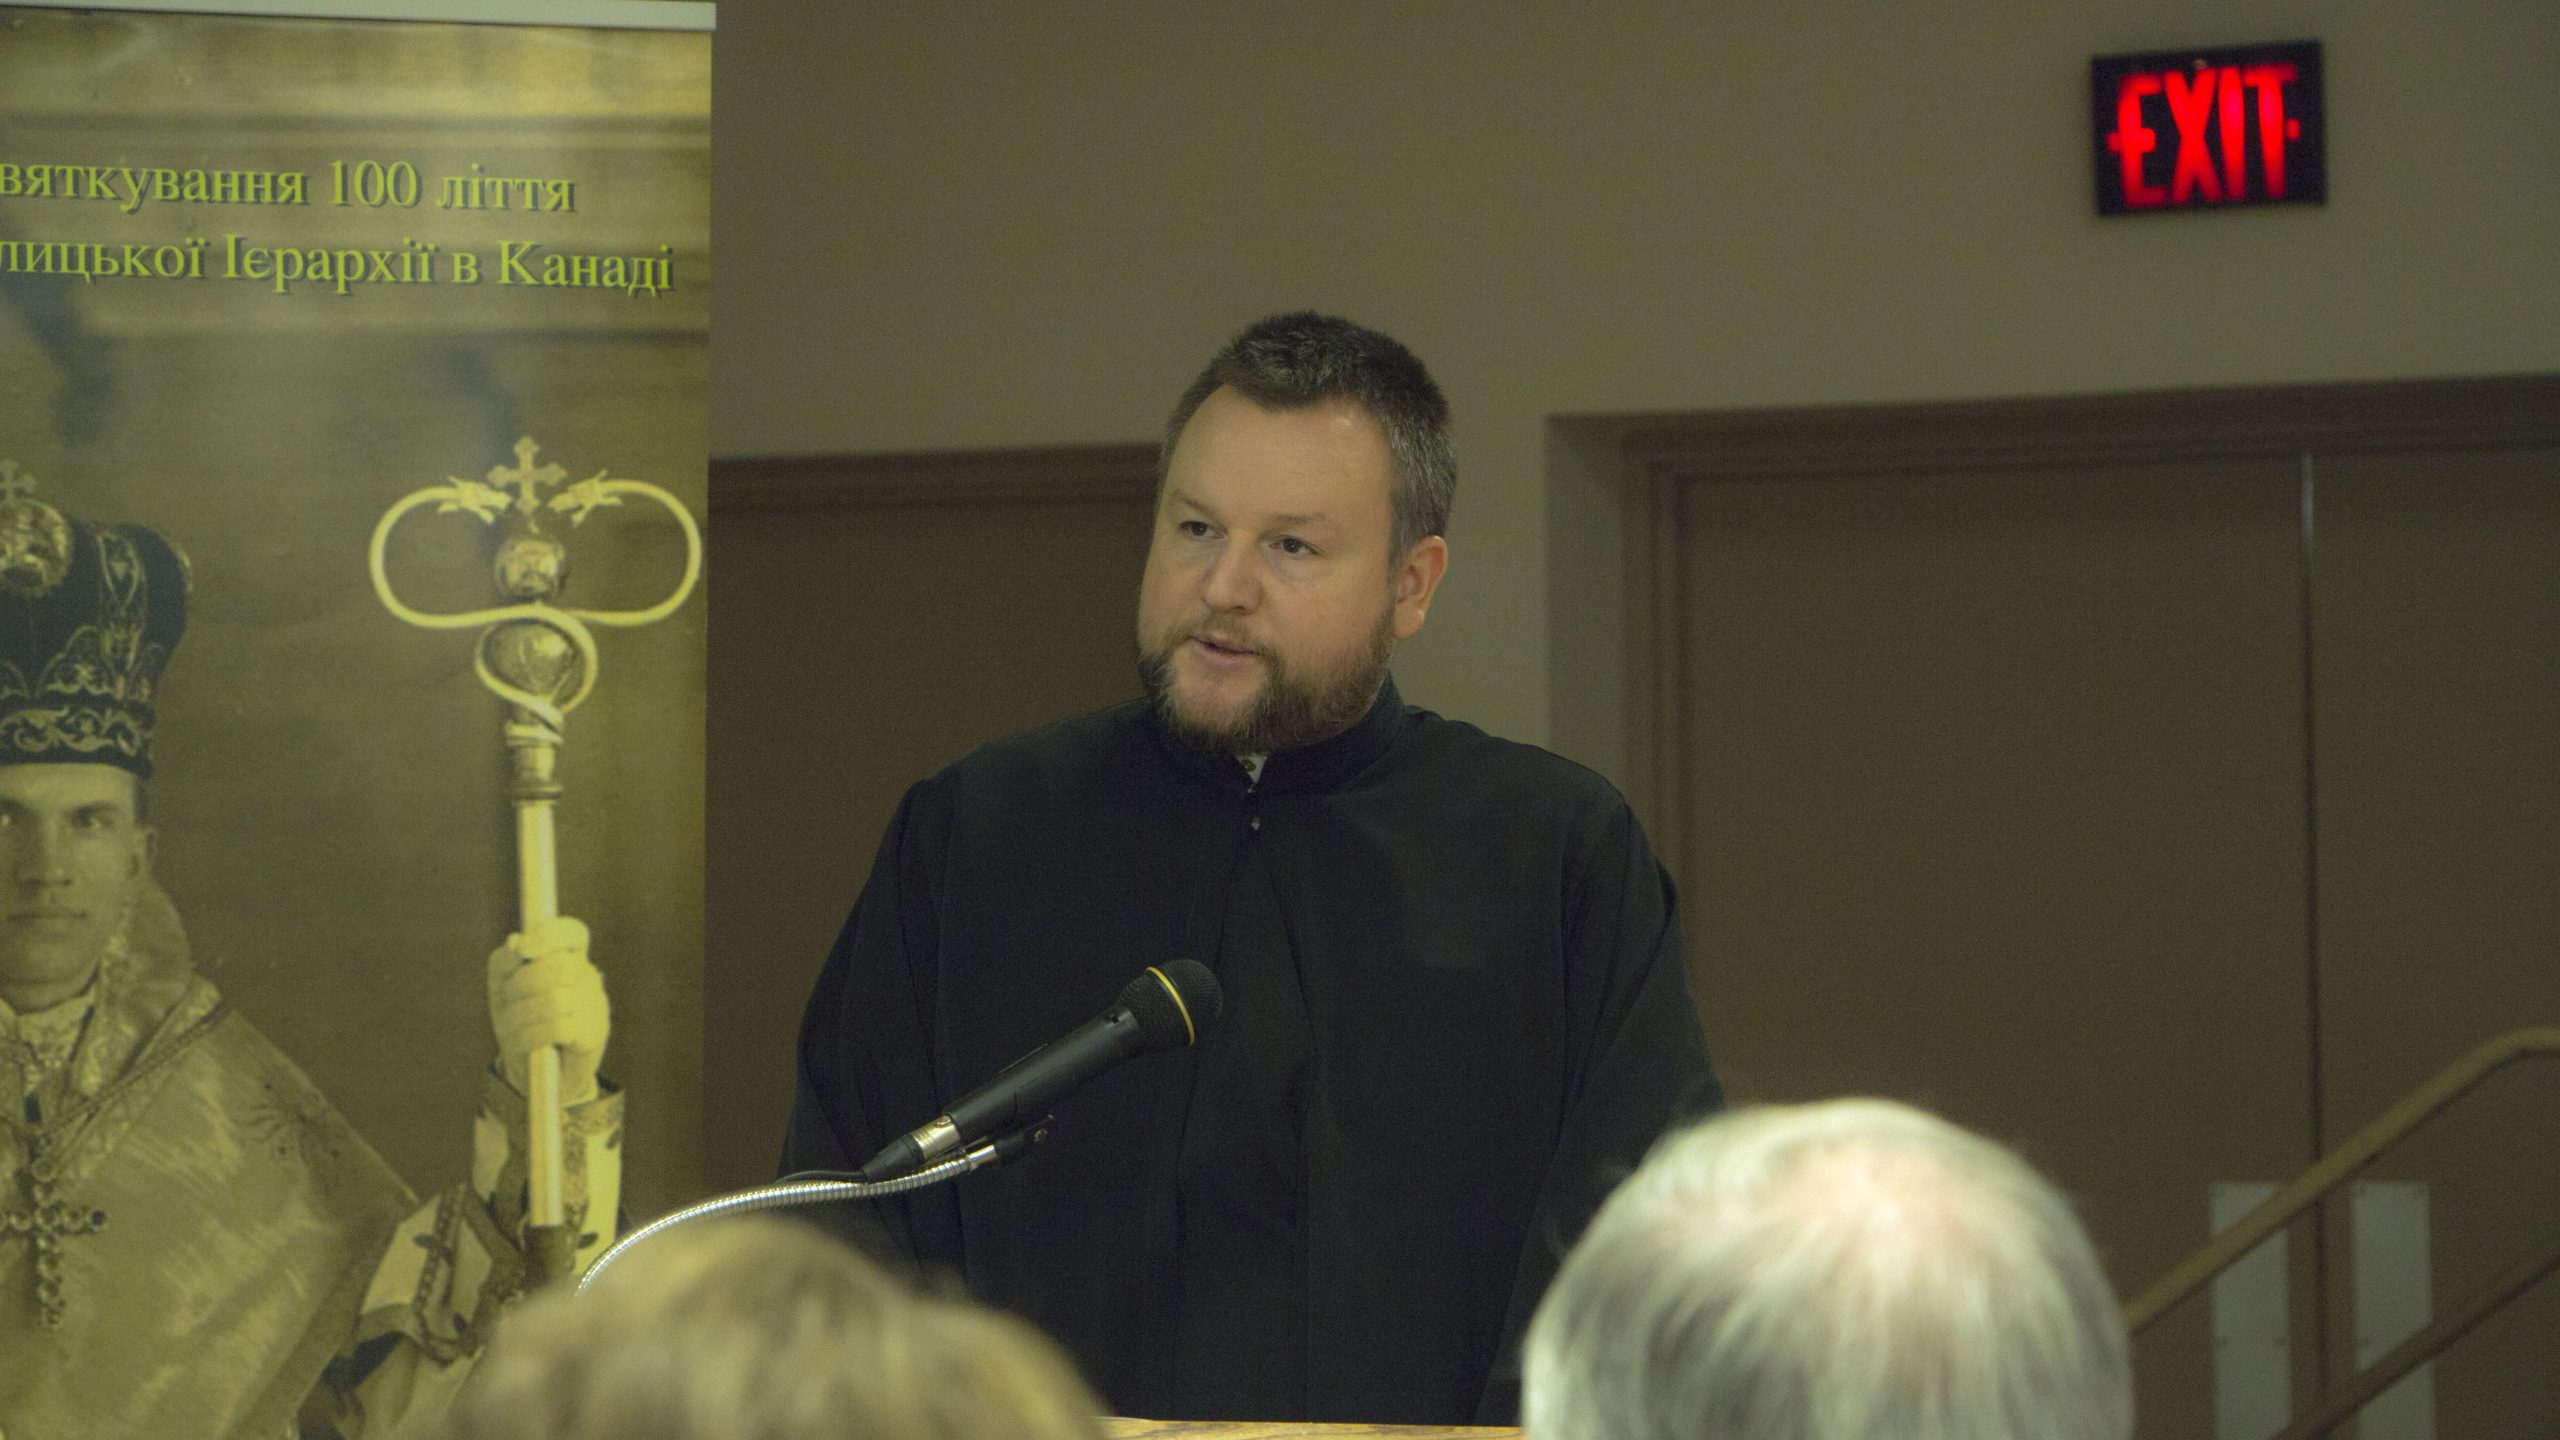 Biography of Bishop Nykyta Budka Launched in Edmonton